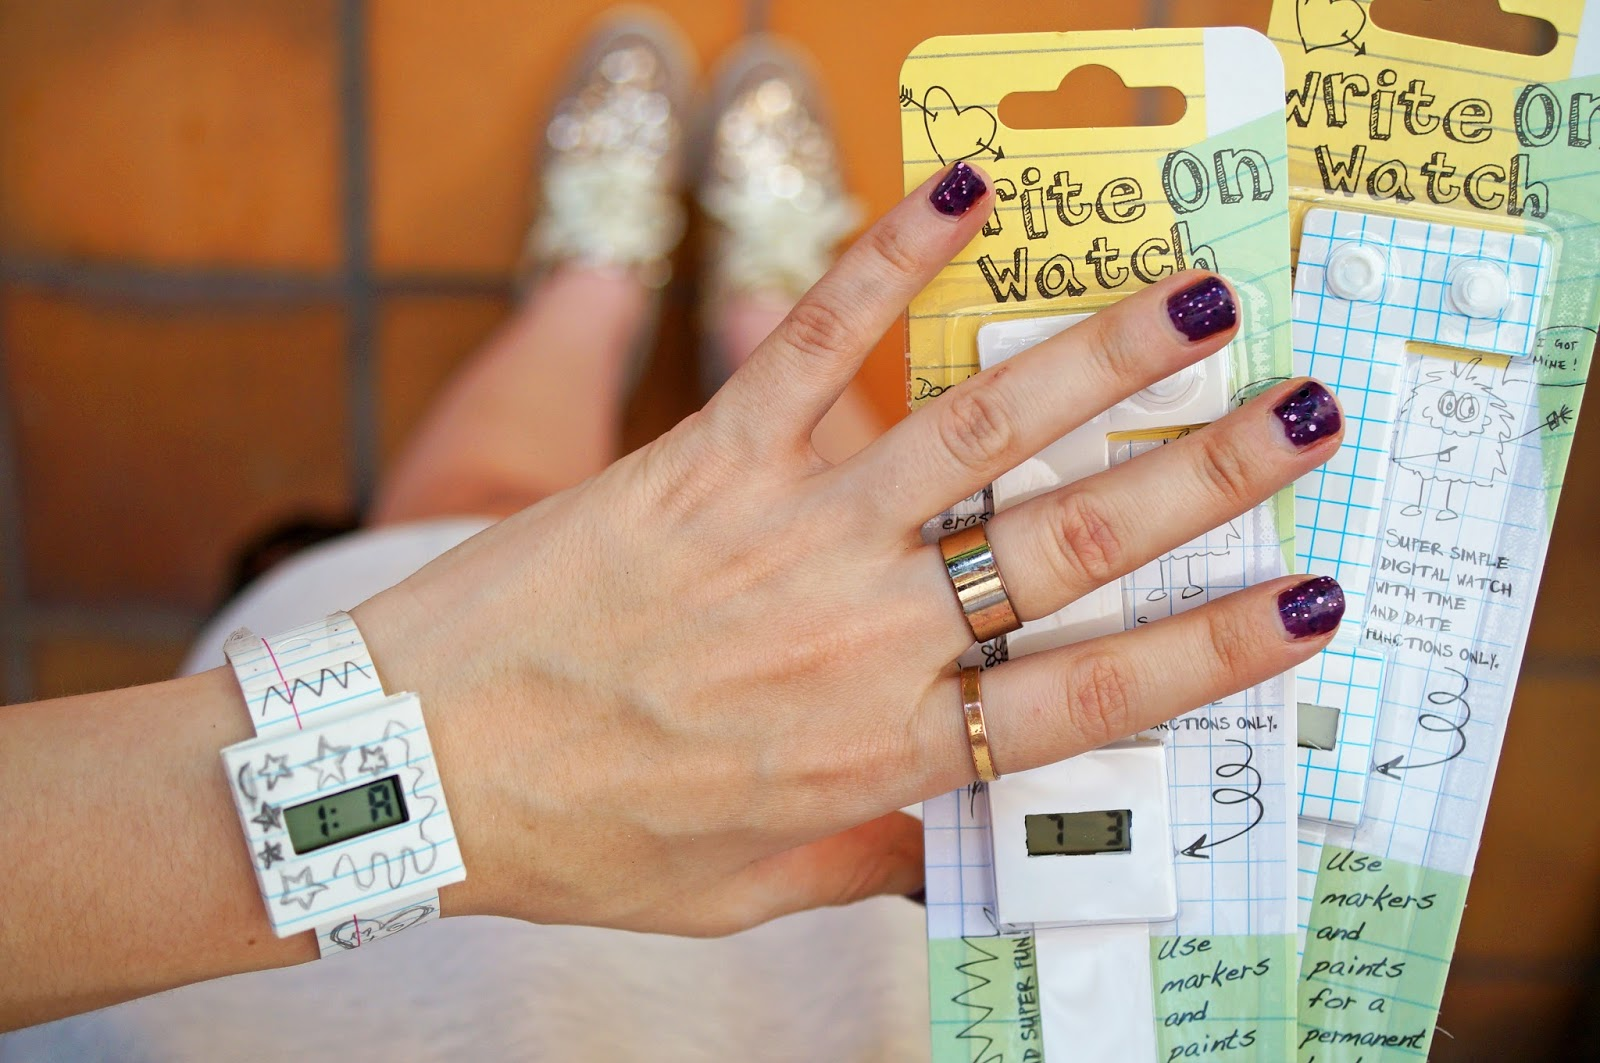 Cool watches you can write on! Perfect Back to School gift